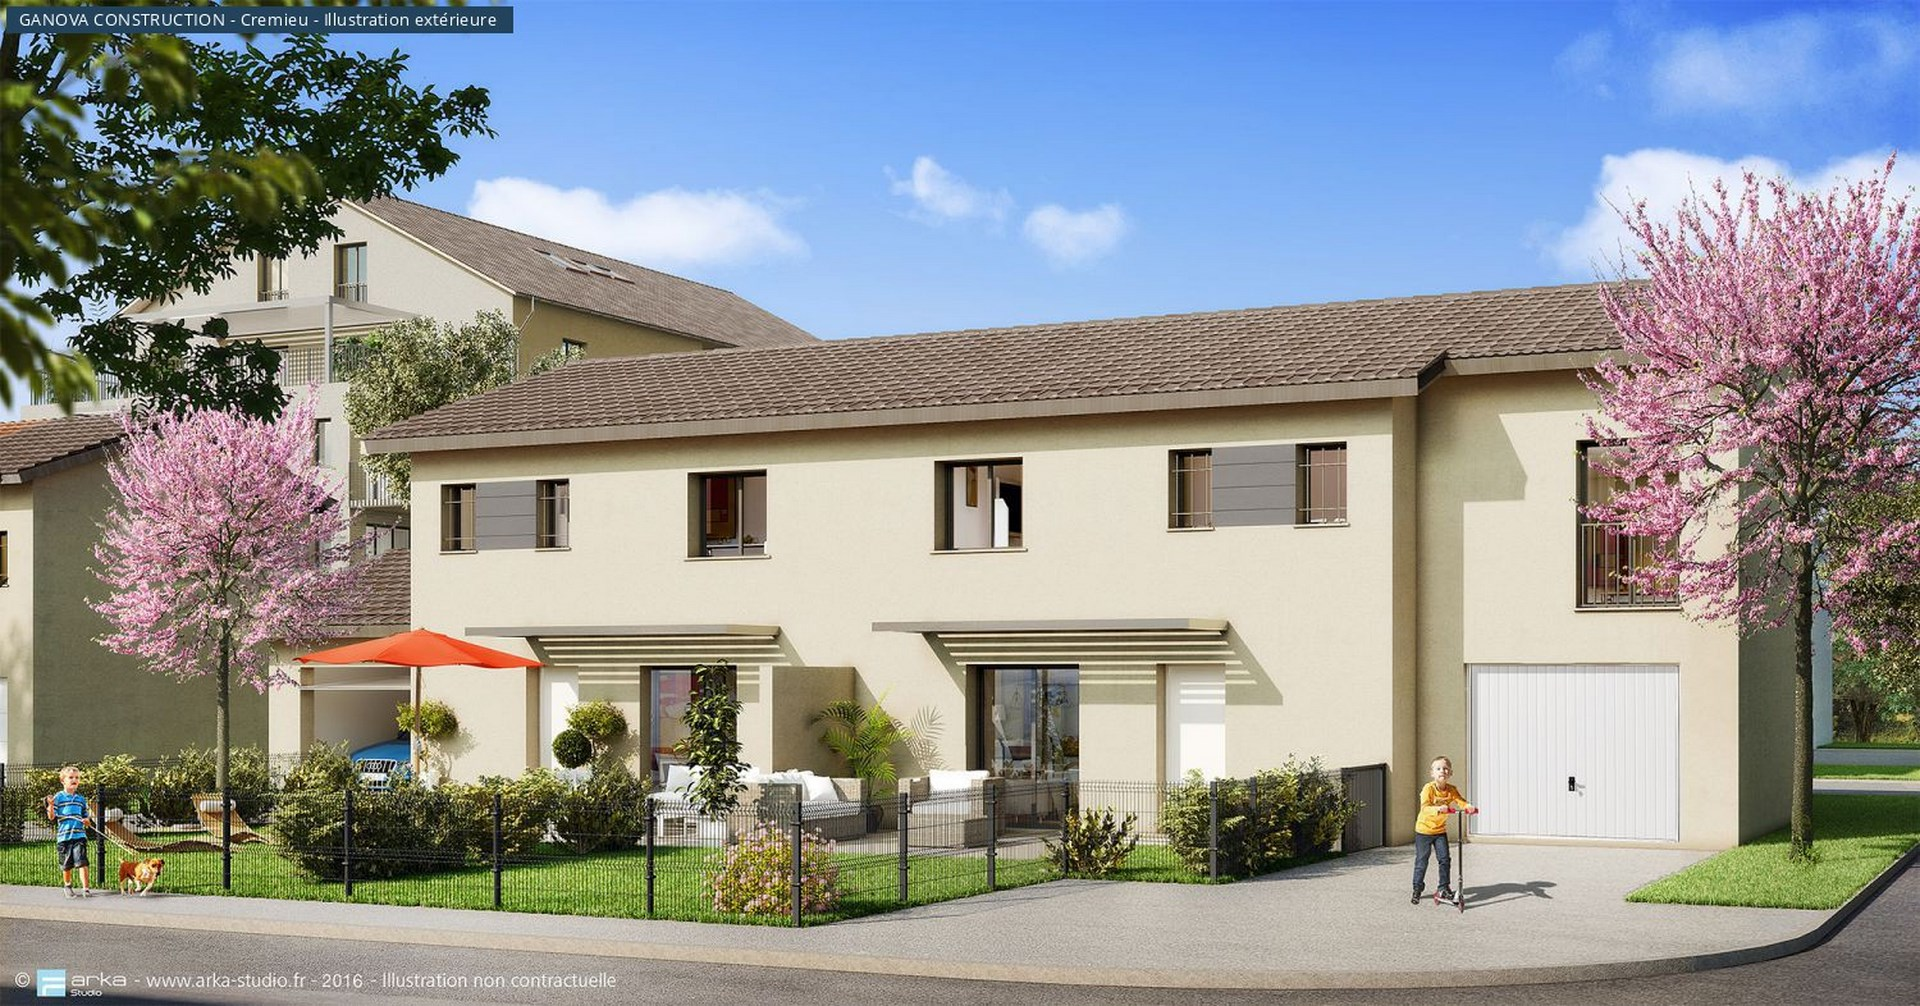 Prix construction maison contemporaine m2 menuiserie - Prix amenagement jardin au m2 ...